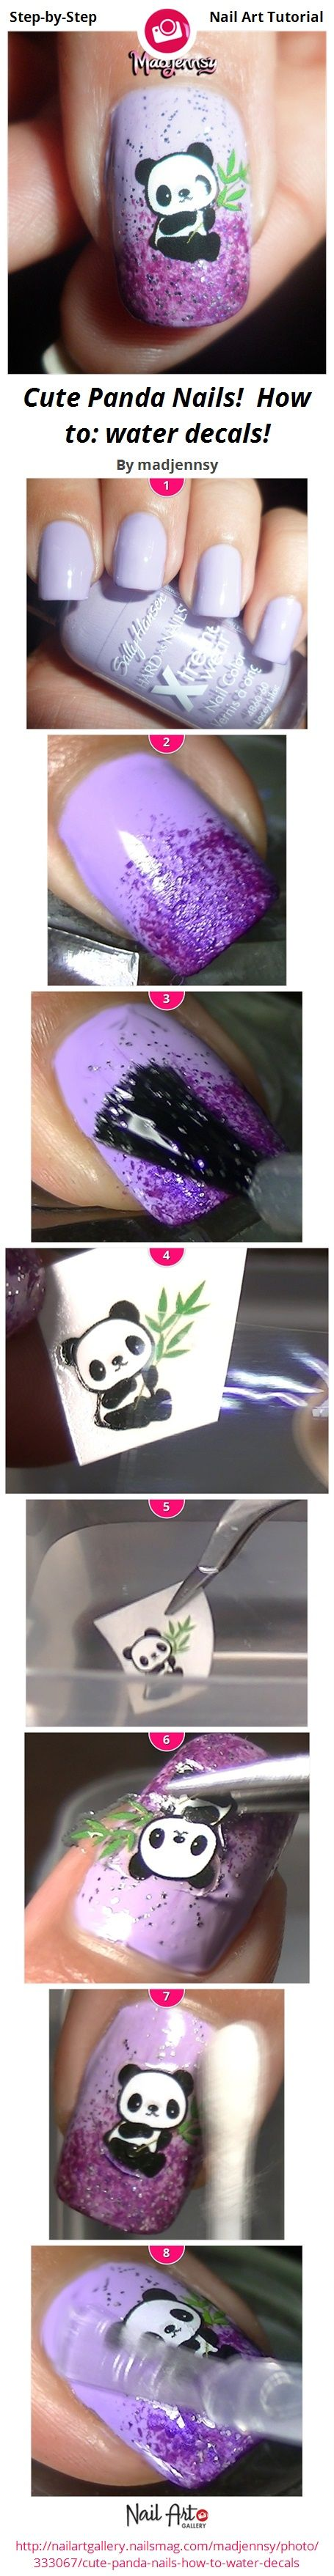 Cute Panda Nails!  How to: water decals! by madjennsy - Nail Art Gallery Step-by-Step Tutorials nailartgallery.nailsmag.com by Nails Magazine www.nailsmag.com #nailart